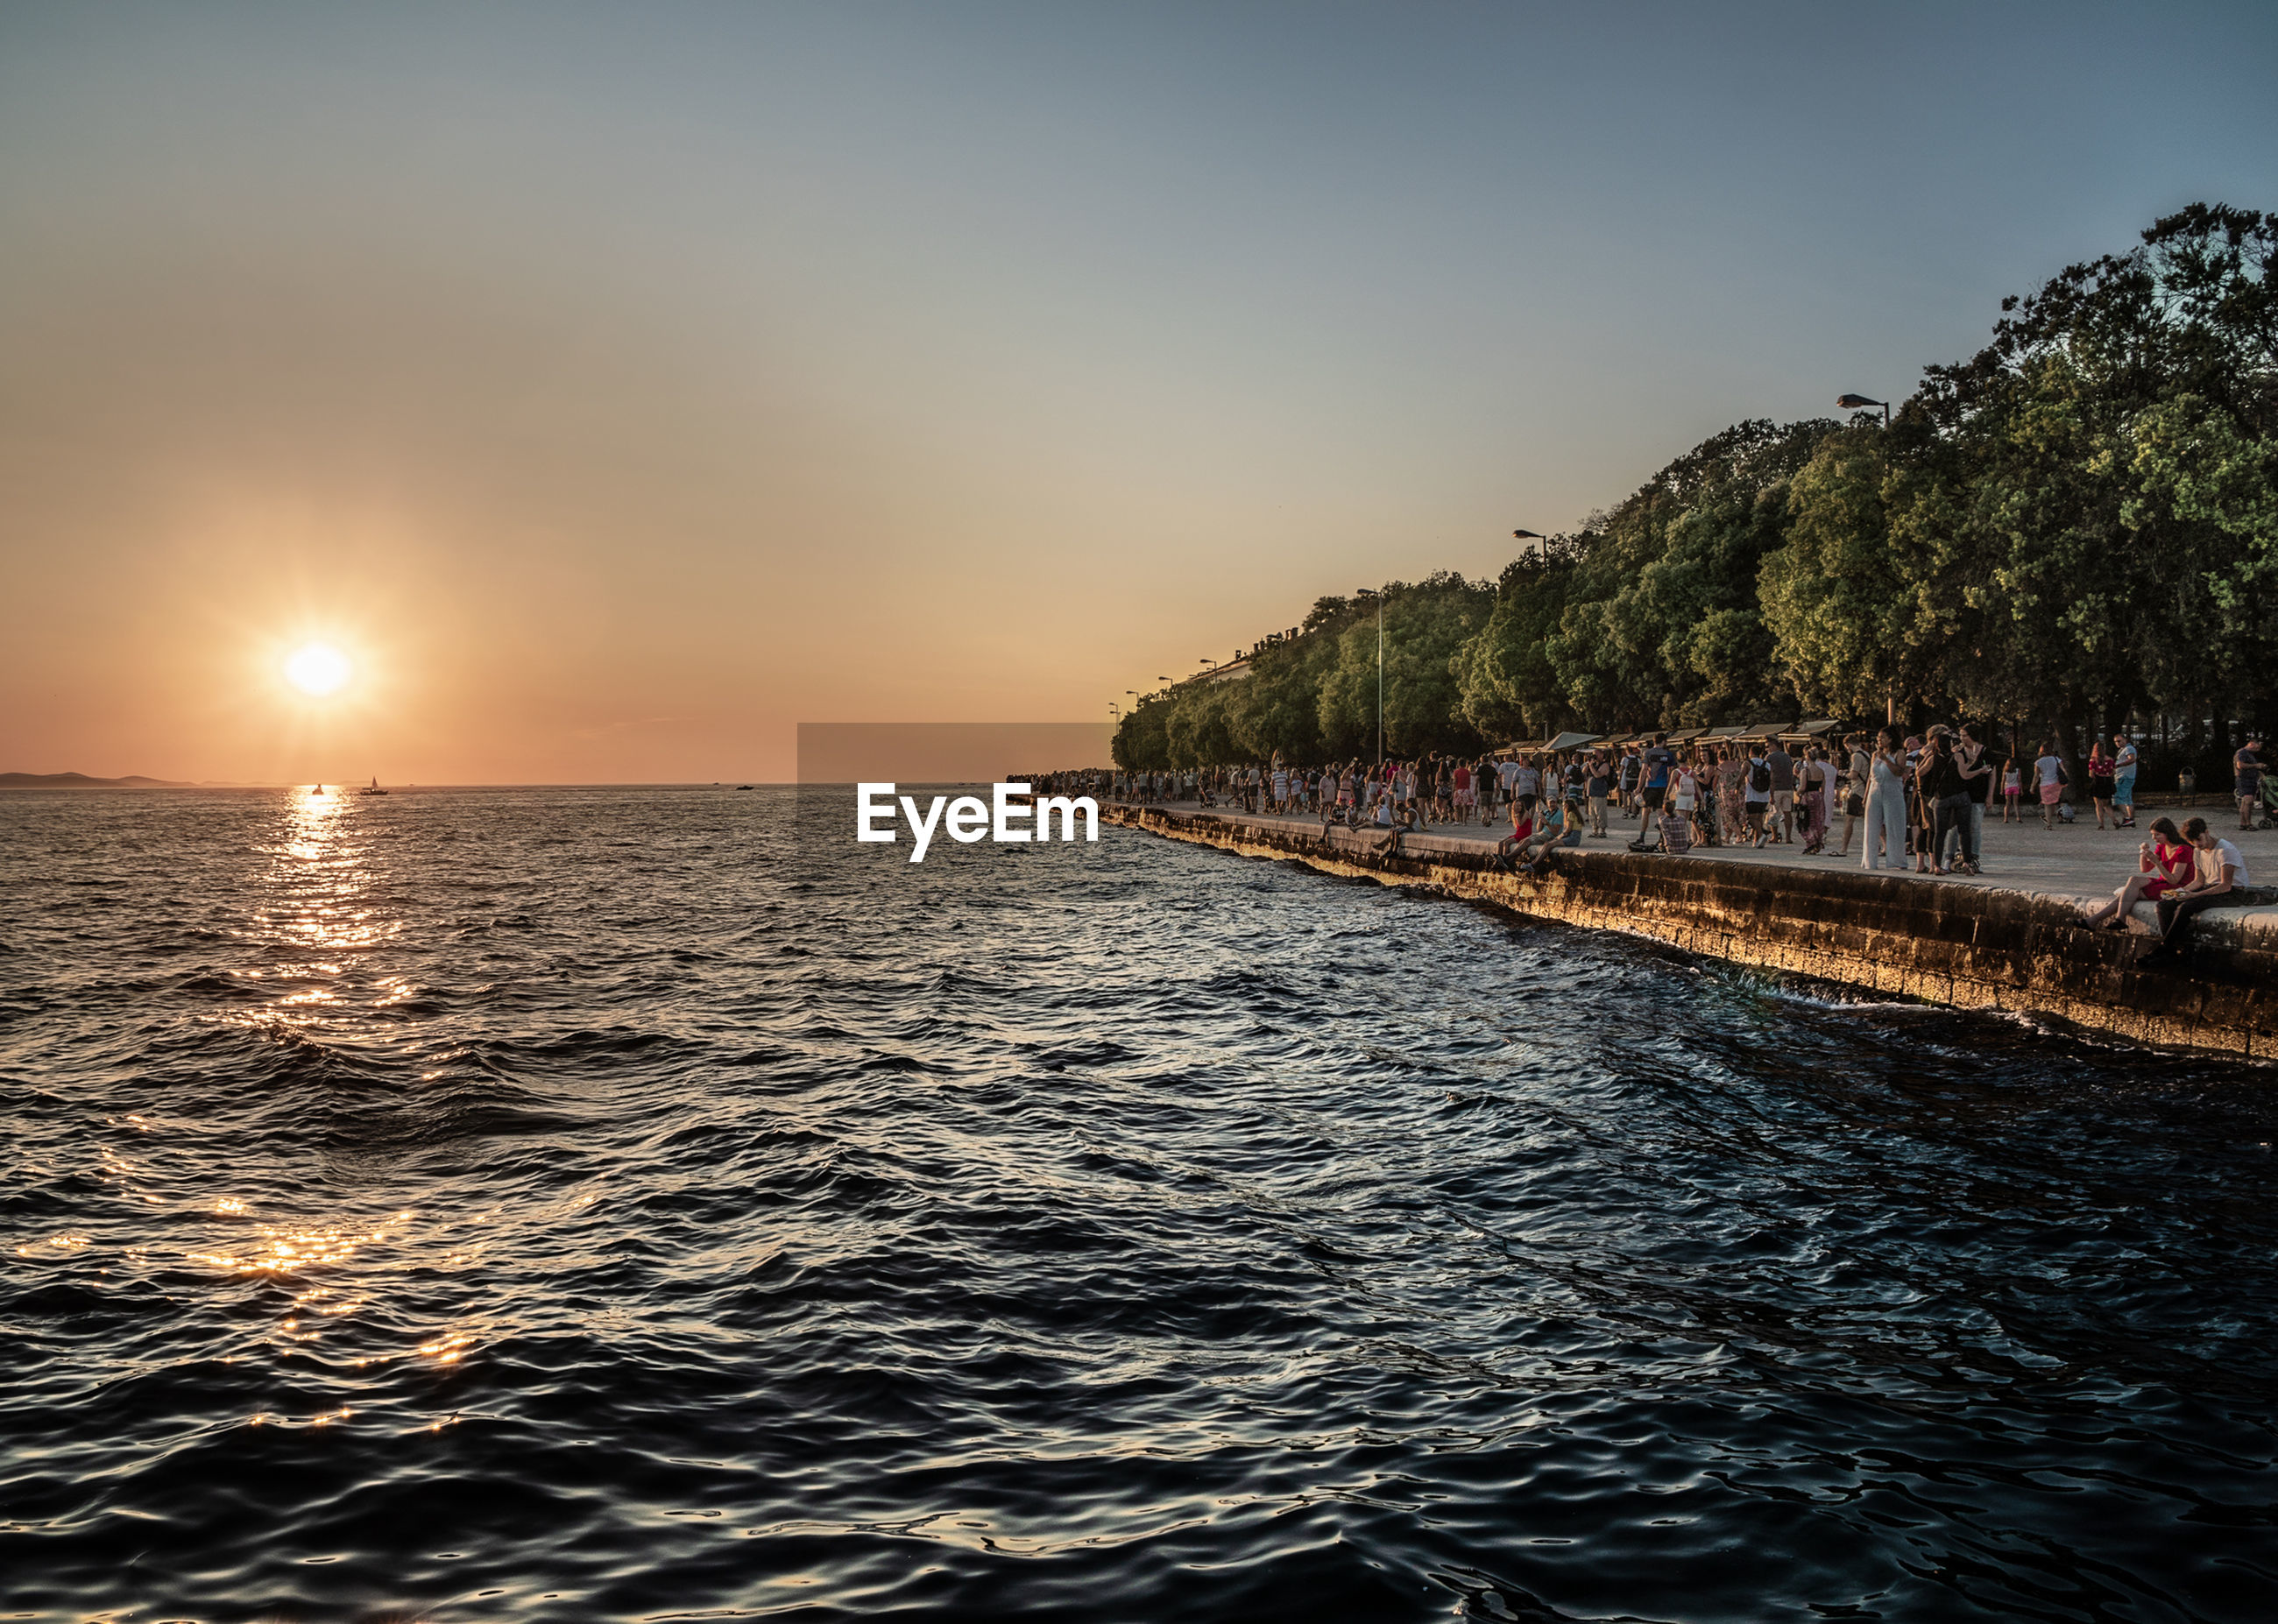 water, sky, sea, sunset, beauty in nature, scenics - nature, waterfront, tranquil scene, nature, tranquility, sun, idyllic, group of people, real people, land, rippled, clear sky, tree, large group of people, outdoors, horizon over water